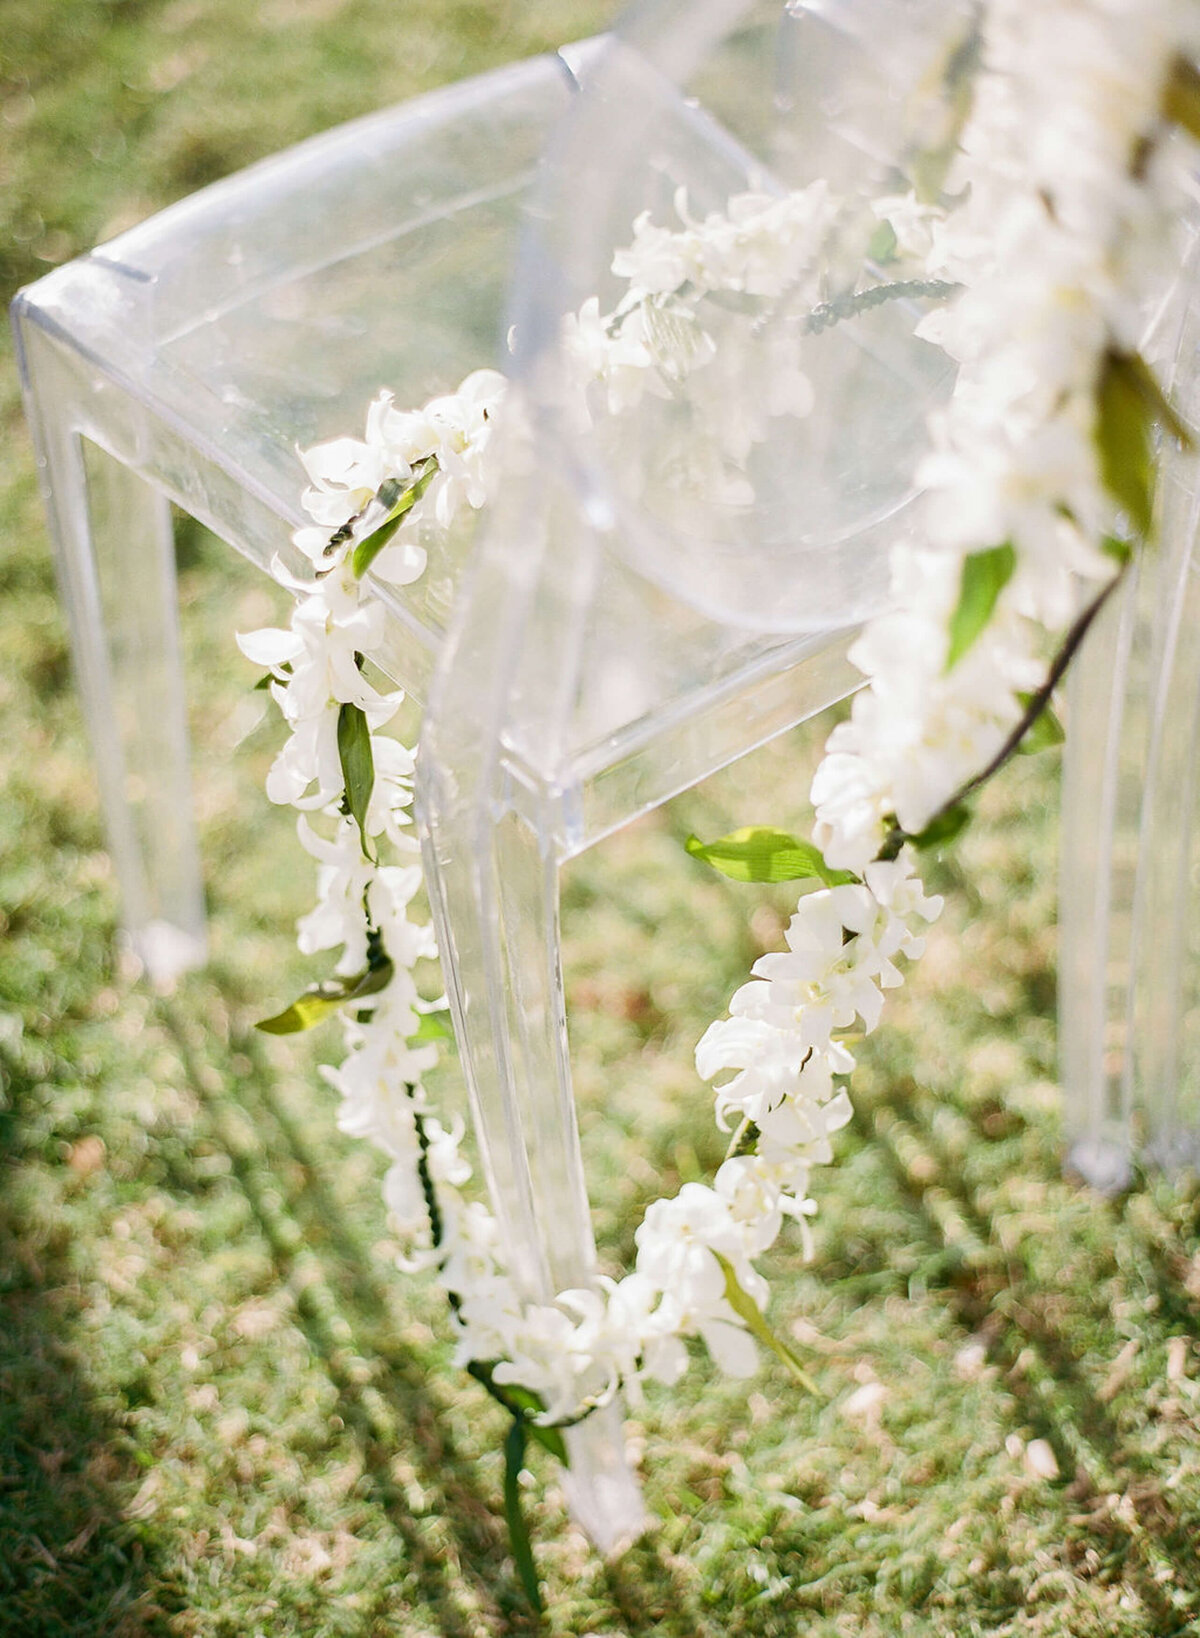 maui-hawaii-wedding-clay-austin-photography-26